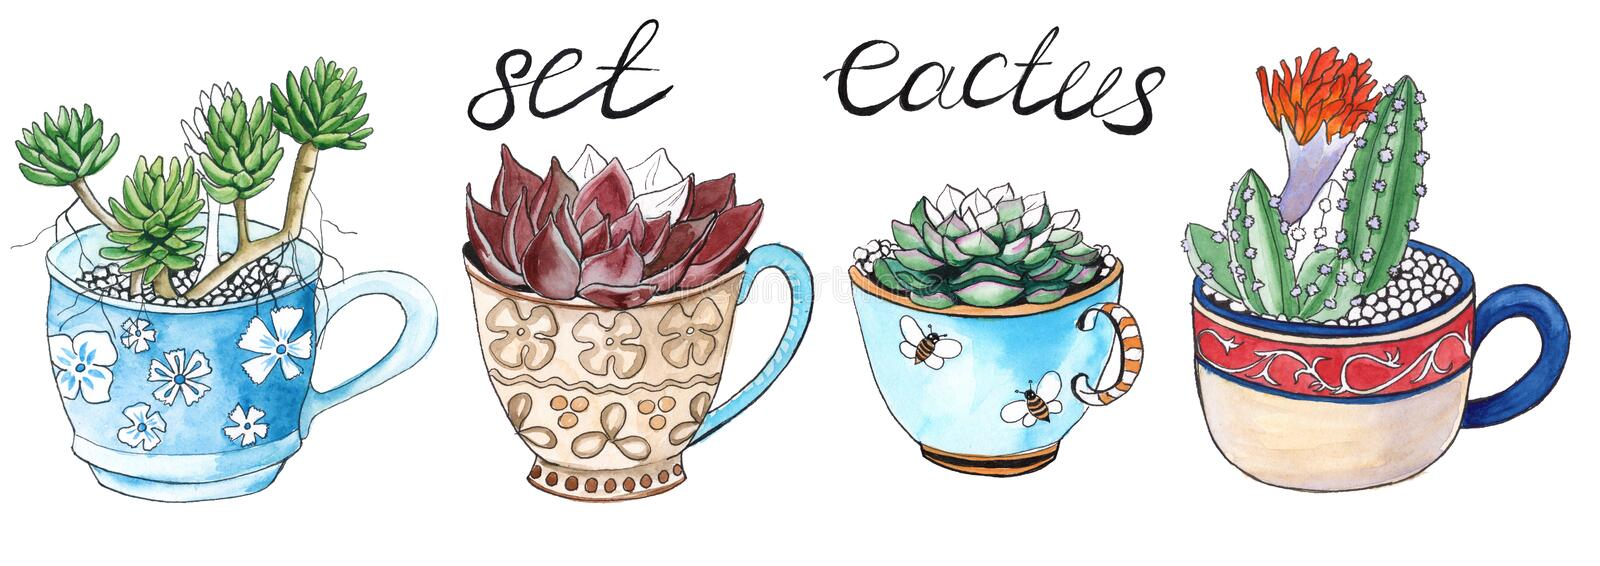 Cactus dans une tasse D'isolement watercolor illustration stock